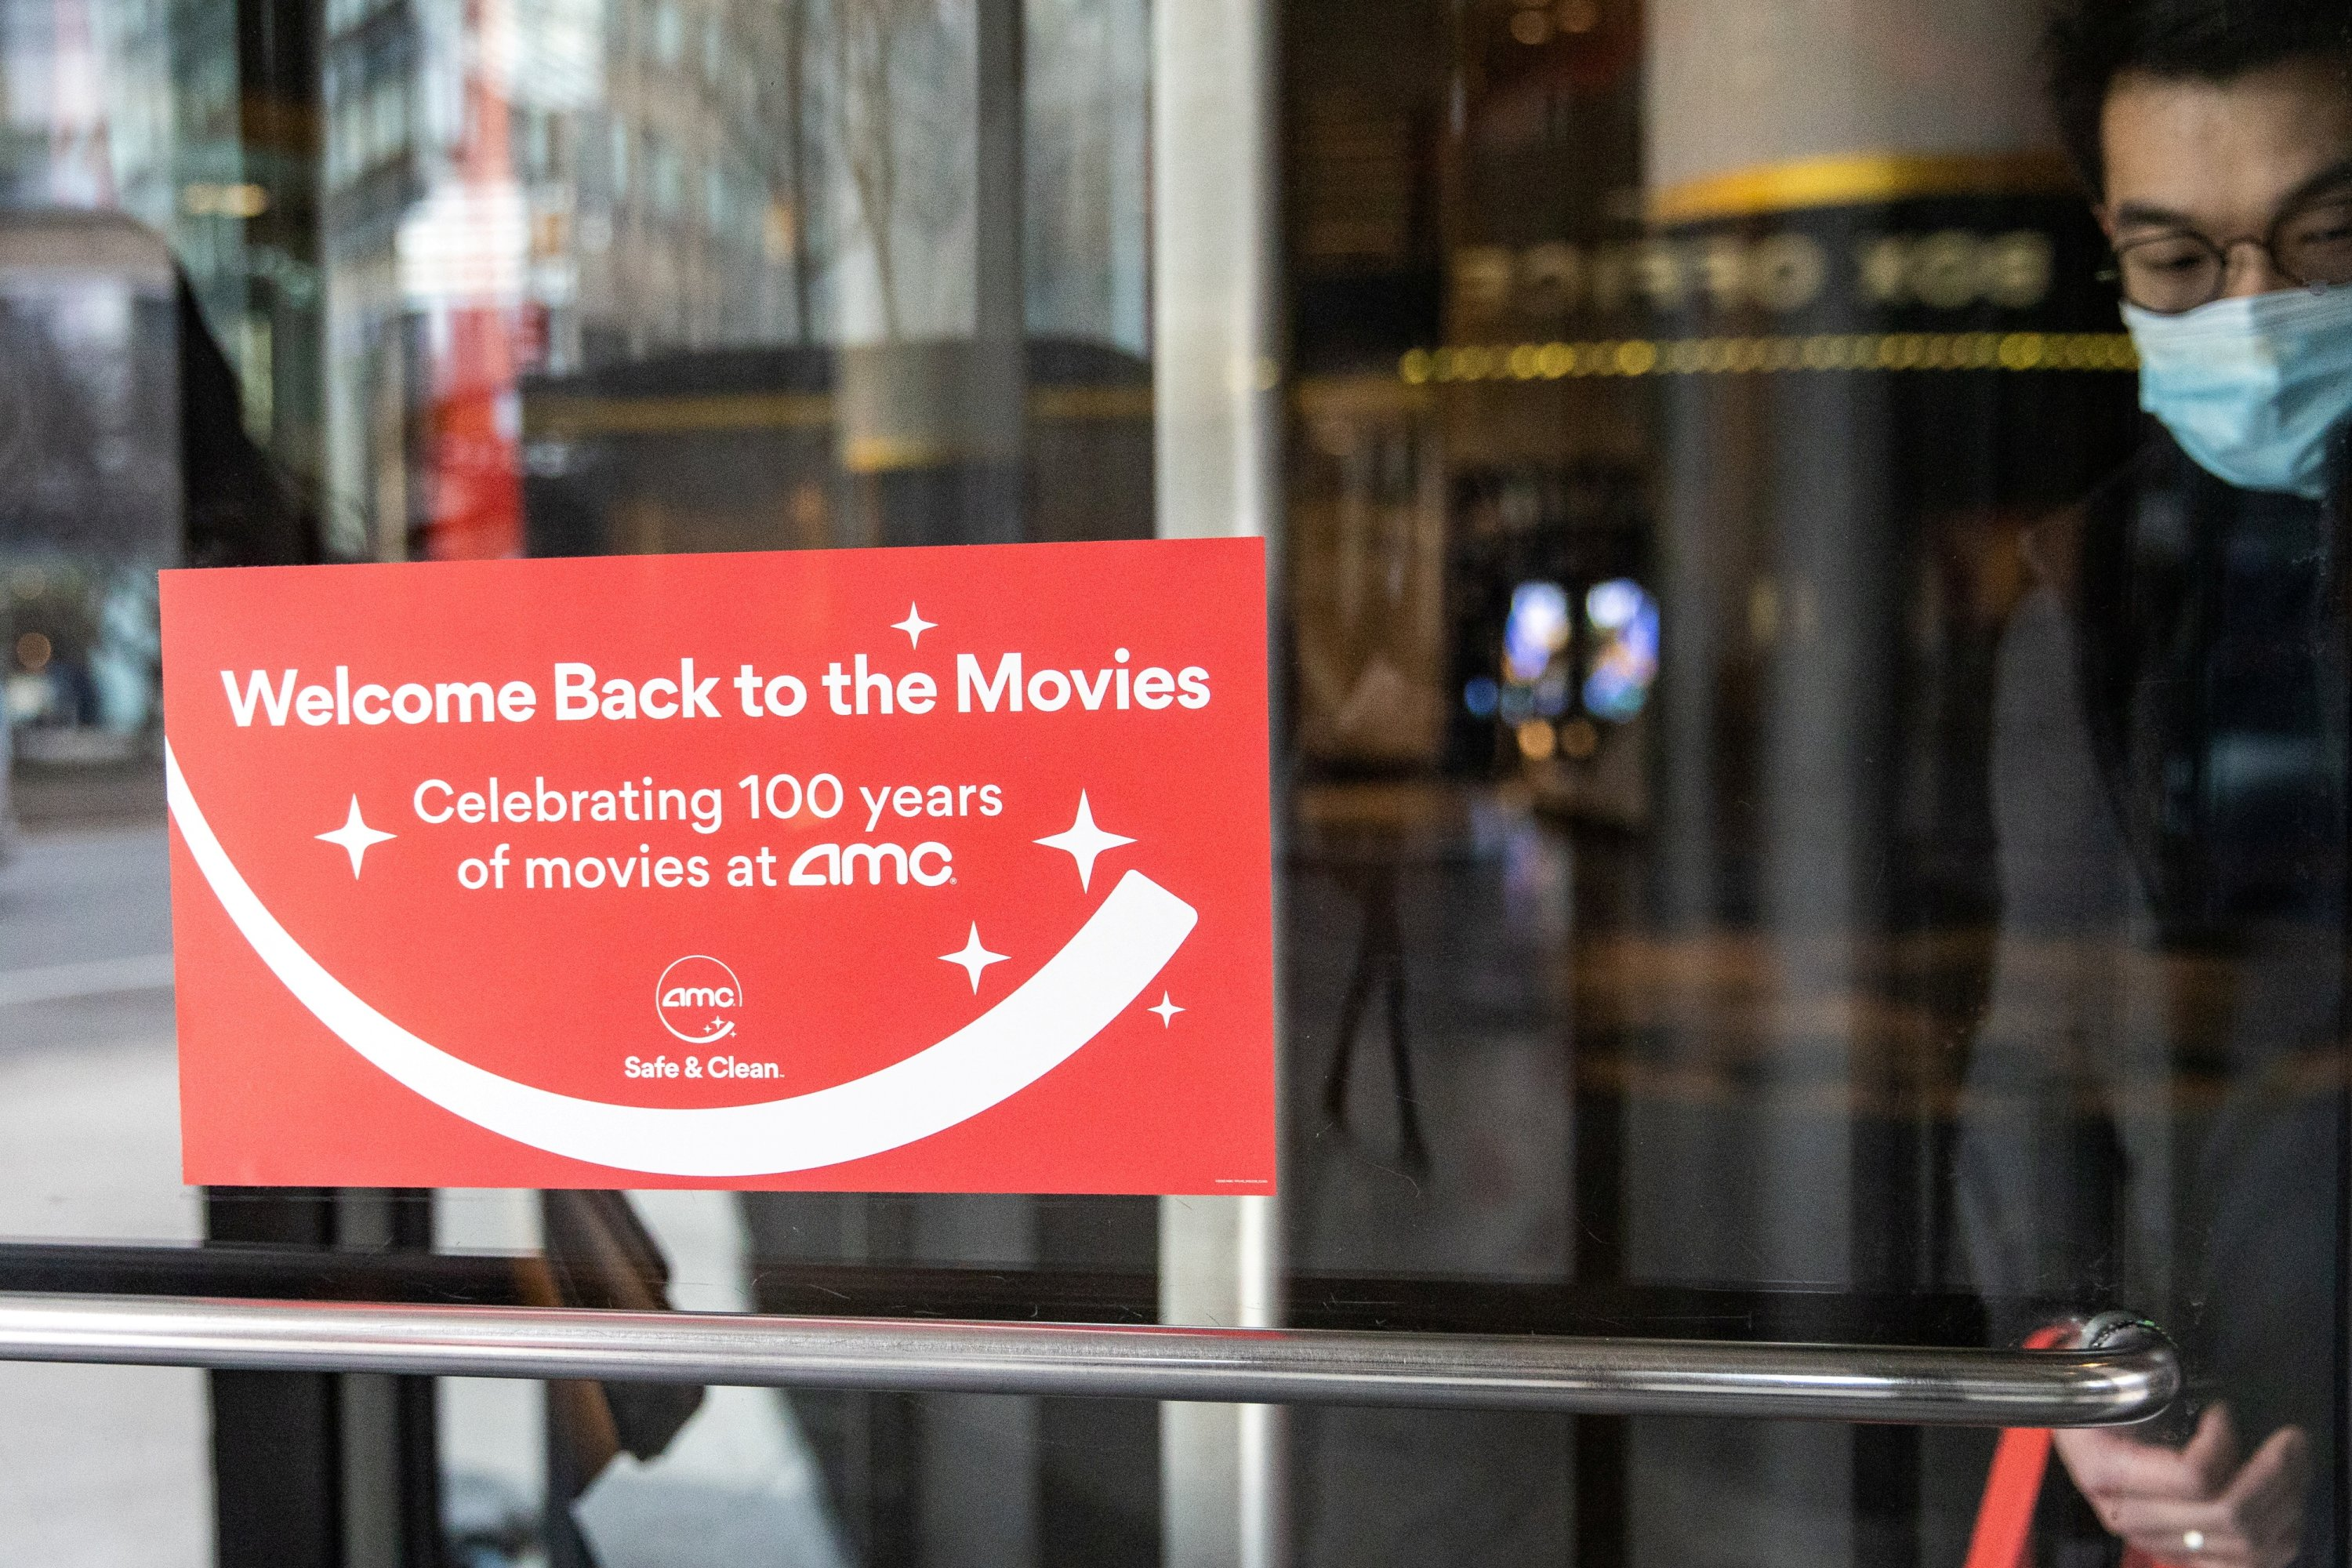 A sign welcomes guests to the AMC movie theater in Lincoln Square, amid the coronavirus disease (COVID-19) pandemic, in the Manhattan borough of New York City, New York, U.S., March 6, 2021. (REUTERS/File Photo)